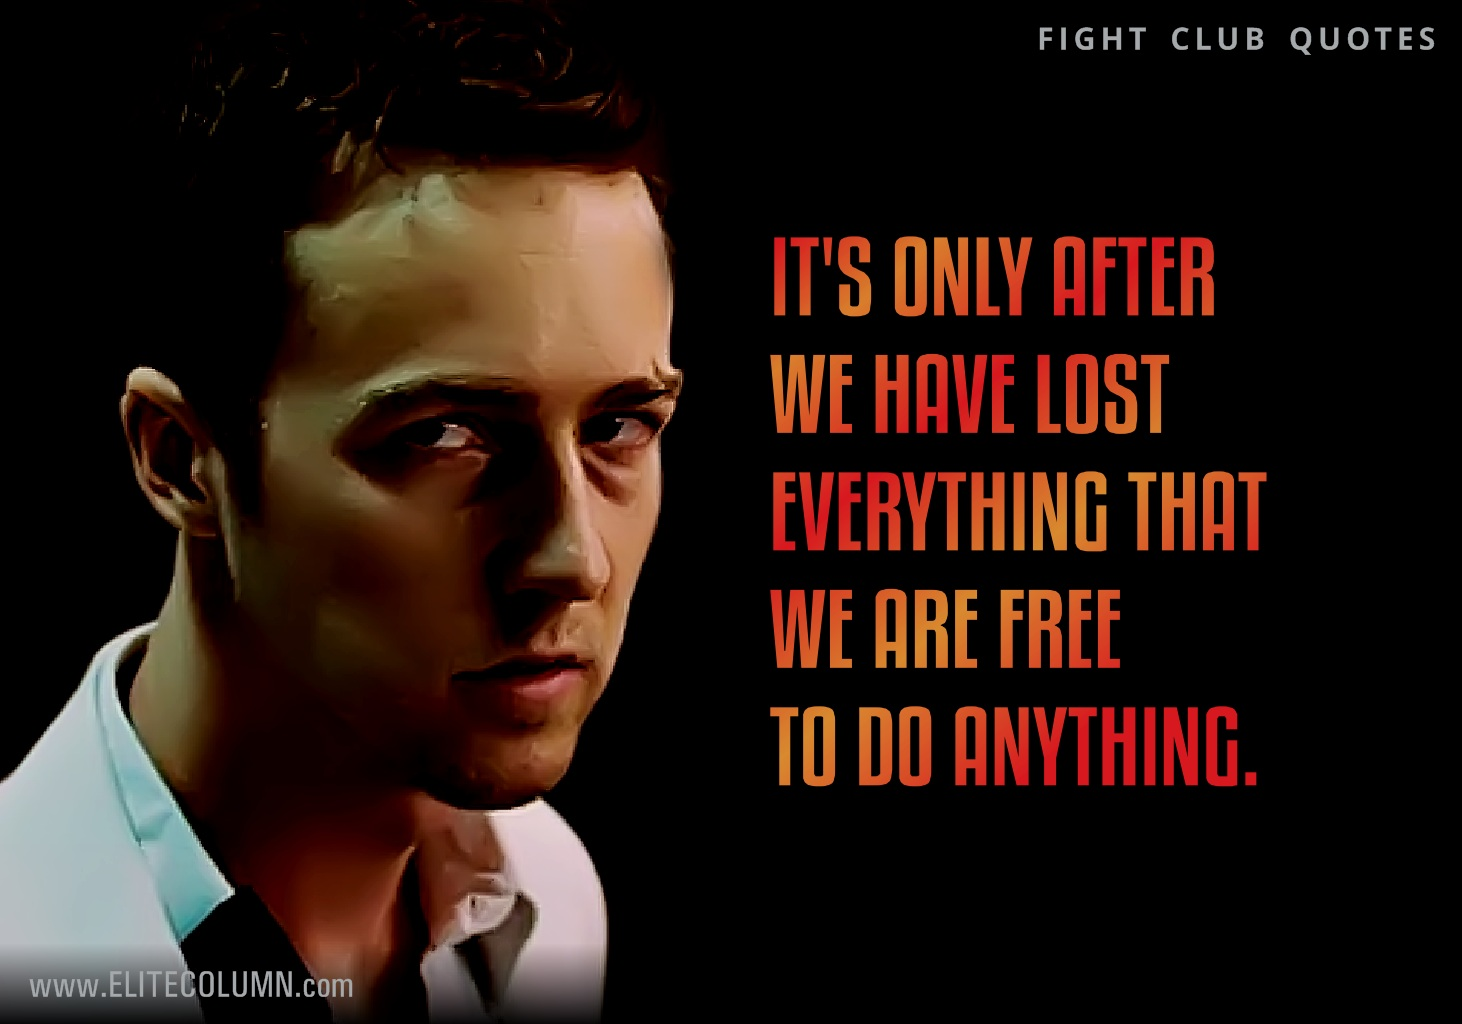 Fight Club Quotes (4)